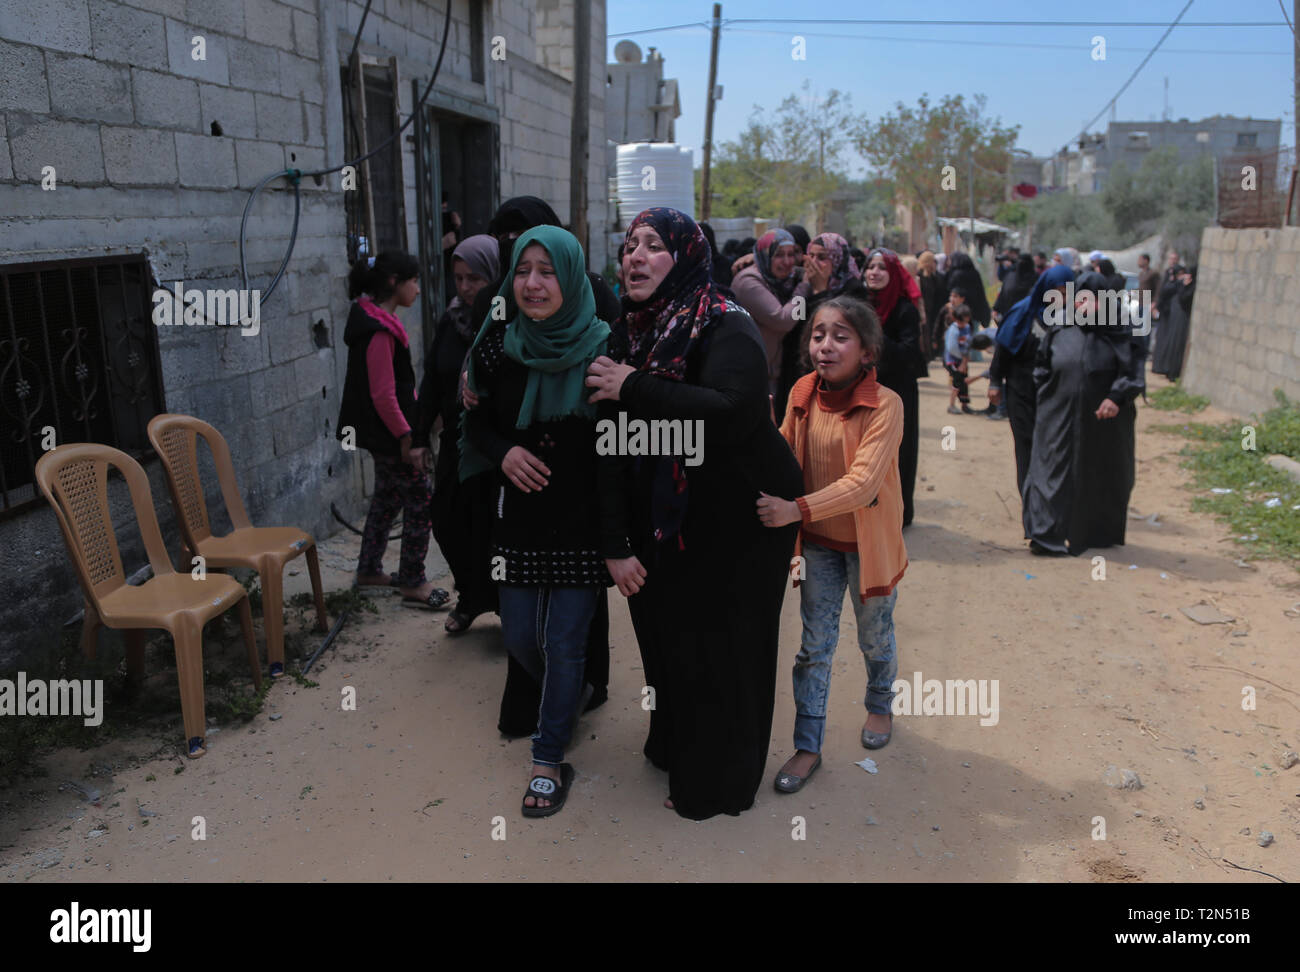 Gaza, khan younis, Palestine. 3rd Apr, 2019. Relatives of the deceased are seen mourning during the funeral ceremony of Faris Abu Hijras, 26, who was killed by Israeli troops east of Khuza'a near the Israeli-Gaza border during the Palestinian Land Day demonstrations. Credit: Yousef Masoud/SOPA Images/ZUMA Wire/Alamy Live News - Stock Image